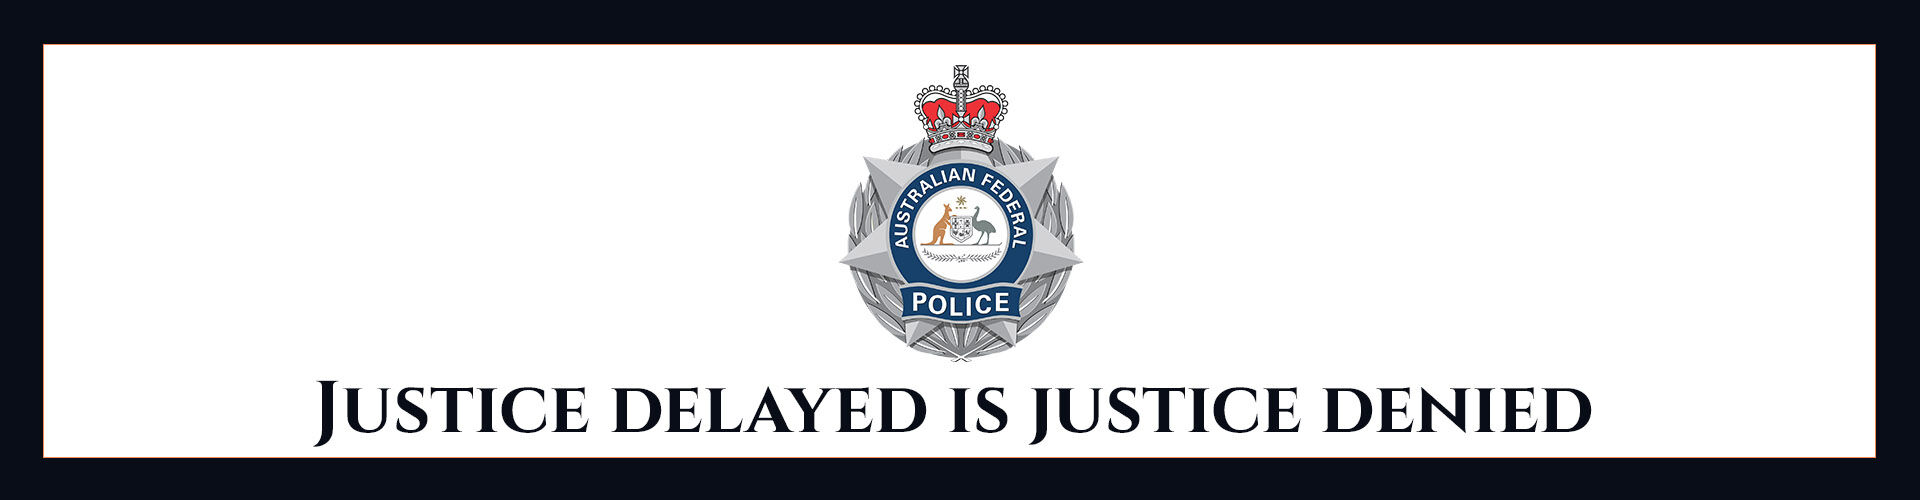 Absent Justice - My Story - Australian Federal Police